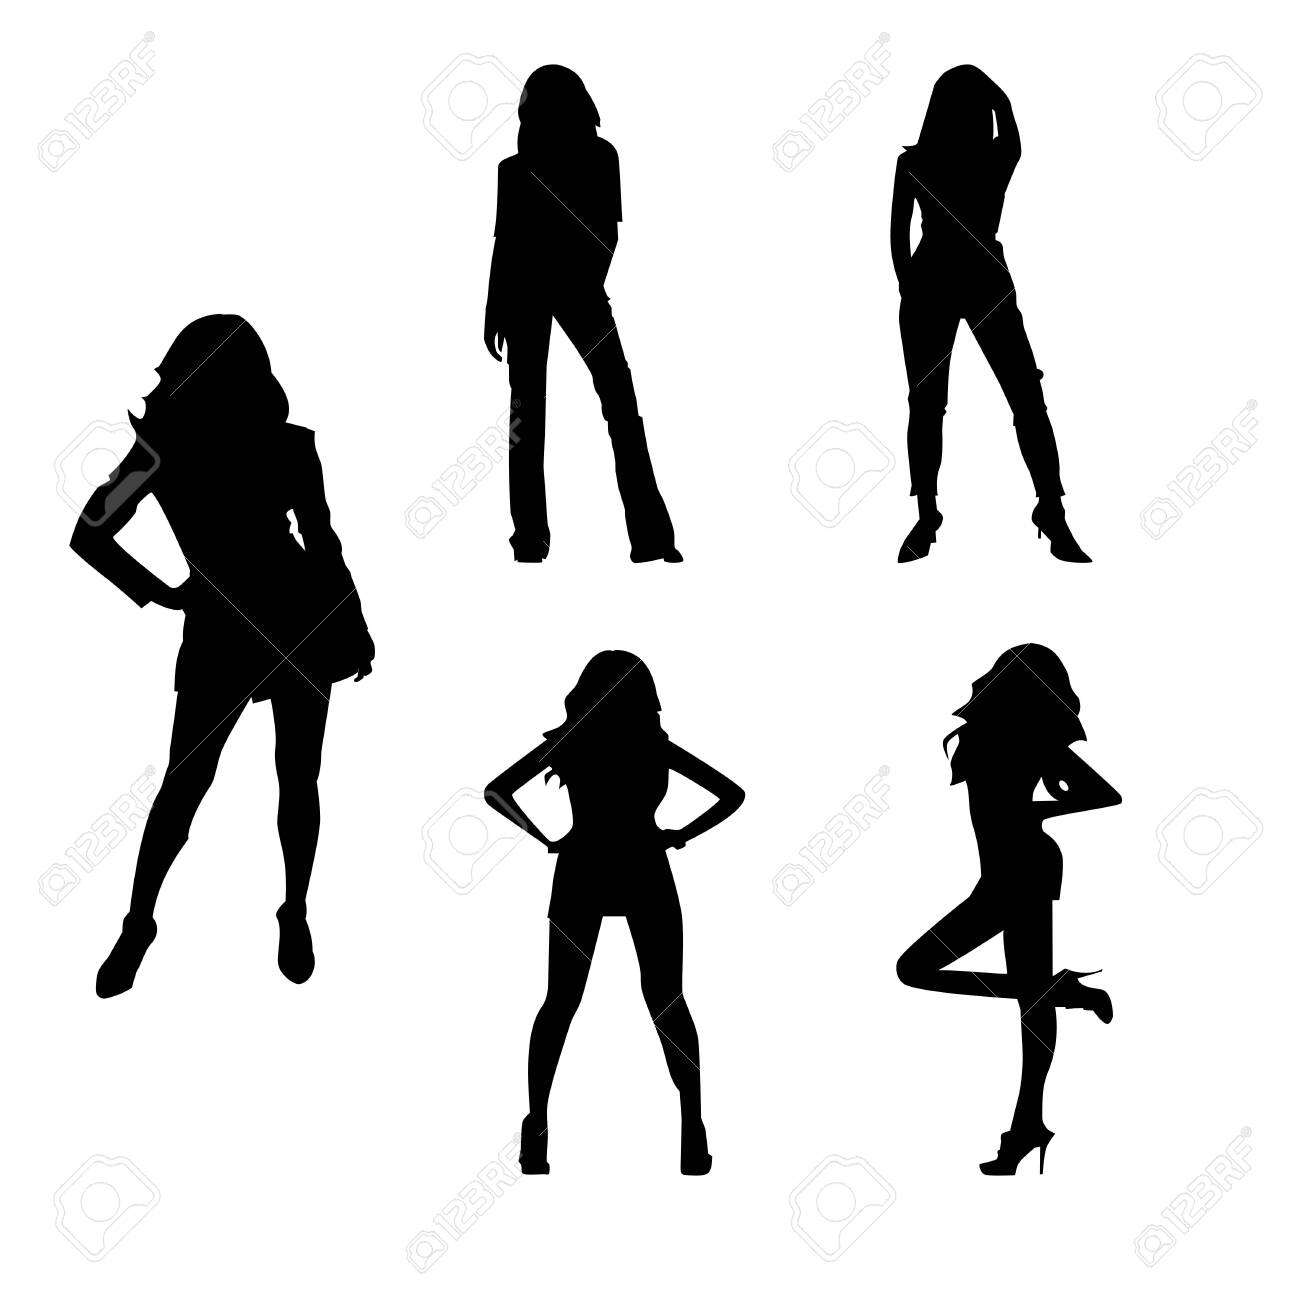 Set Silhouette of a woman vector - 140812914